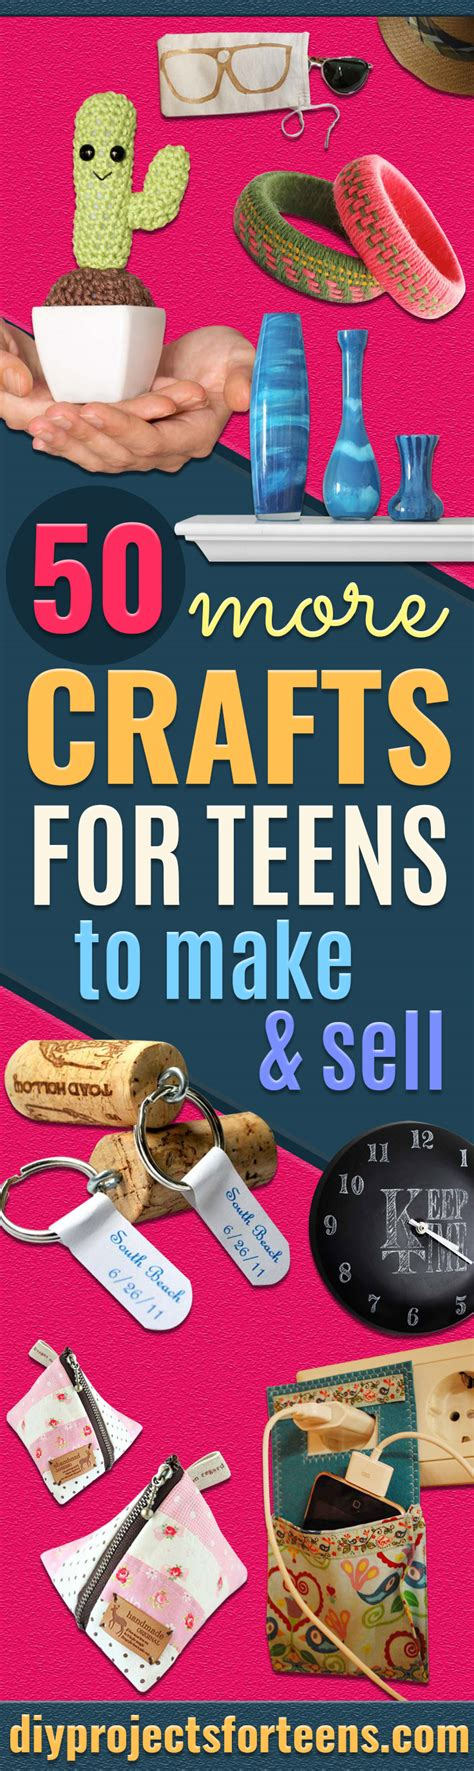 crafts to make and sell for 50 more crafts for to make and sell diy projects